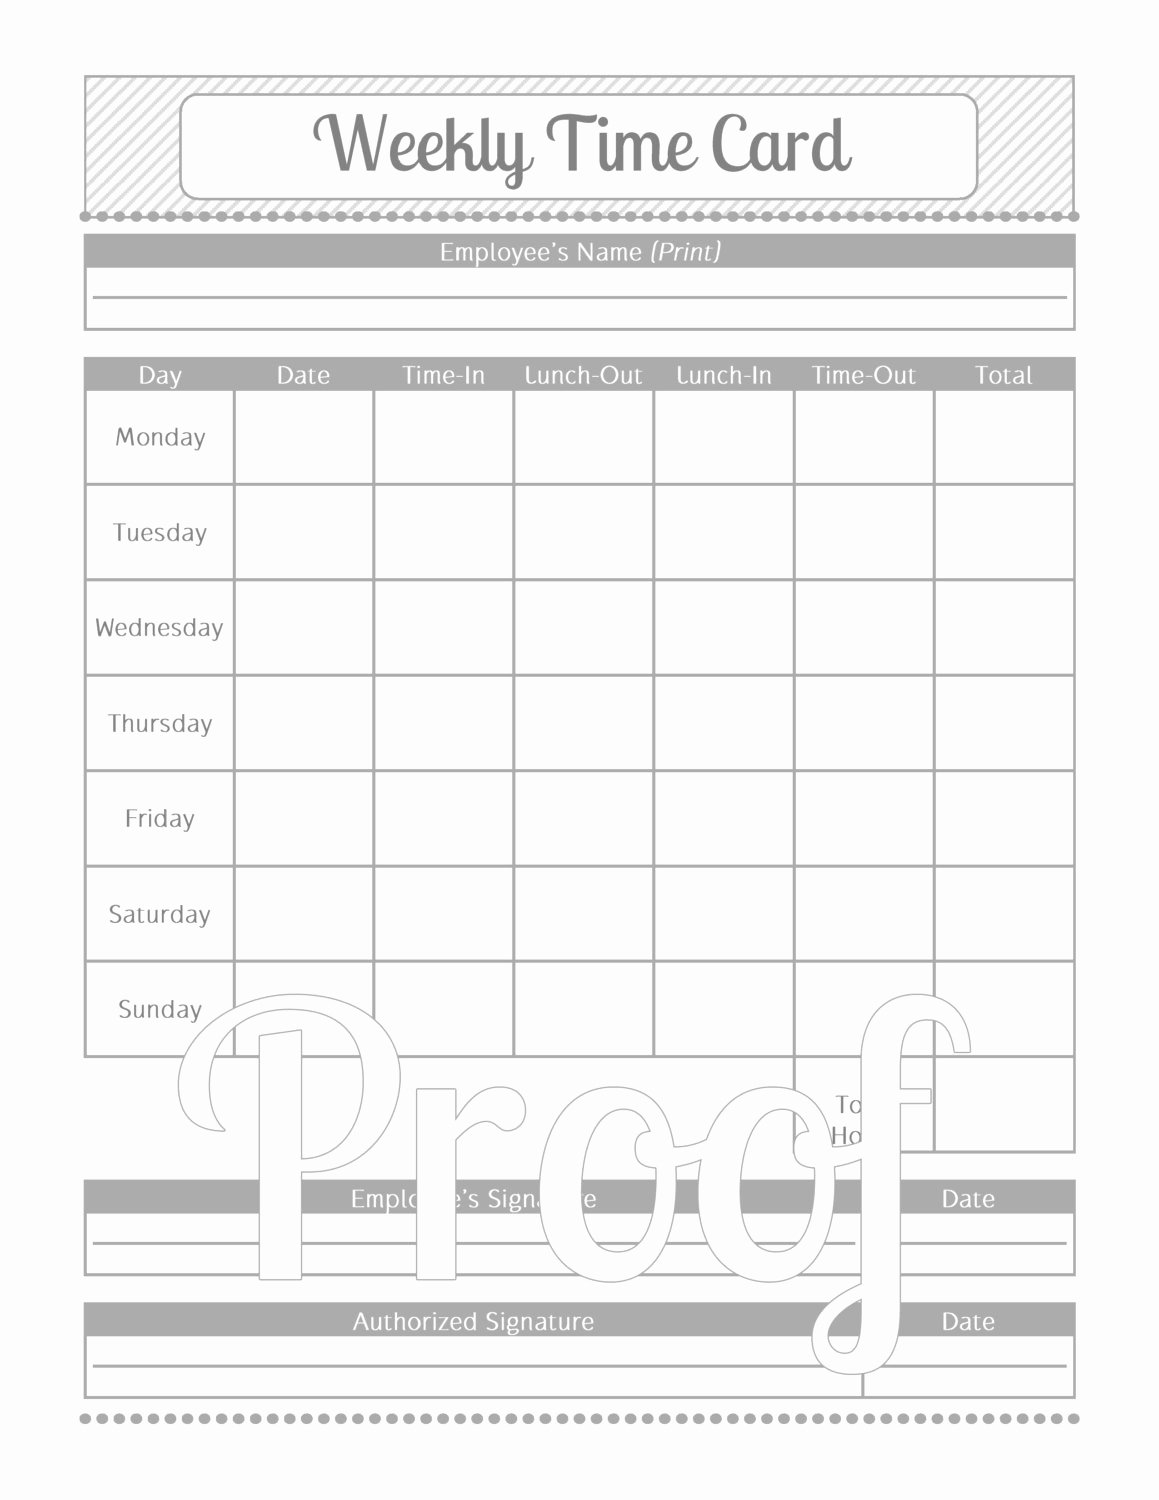 Monthly Time Card Template Fresh Weekly Time Card Grey and White Instant by